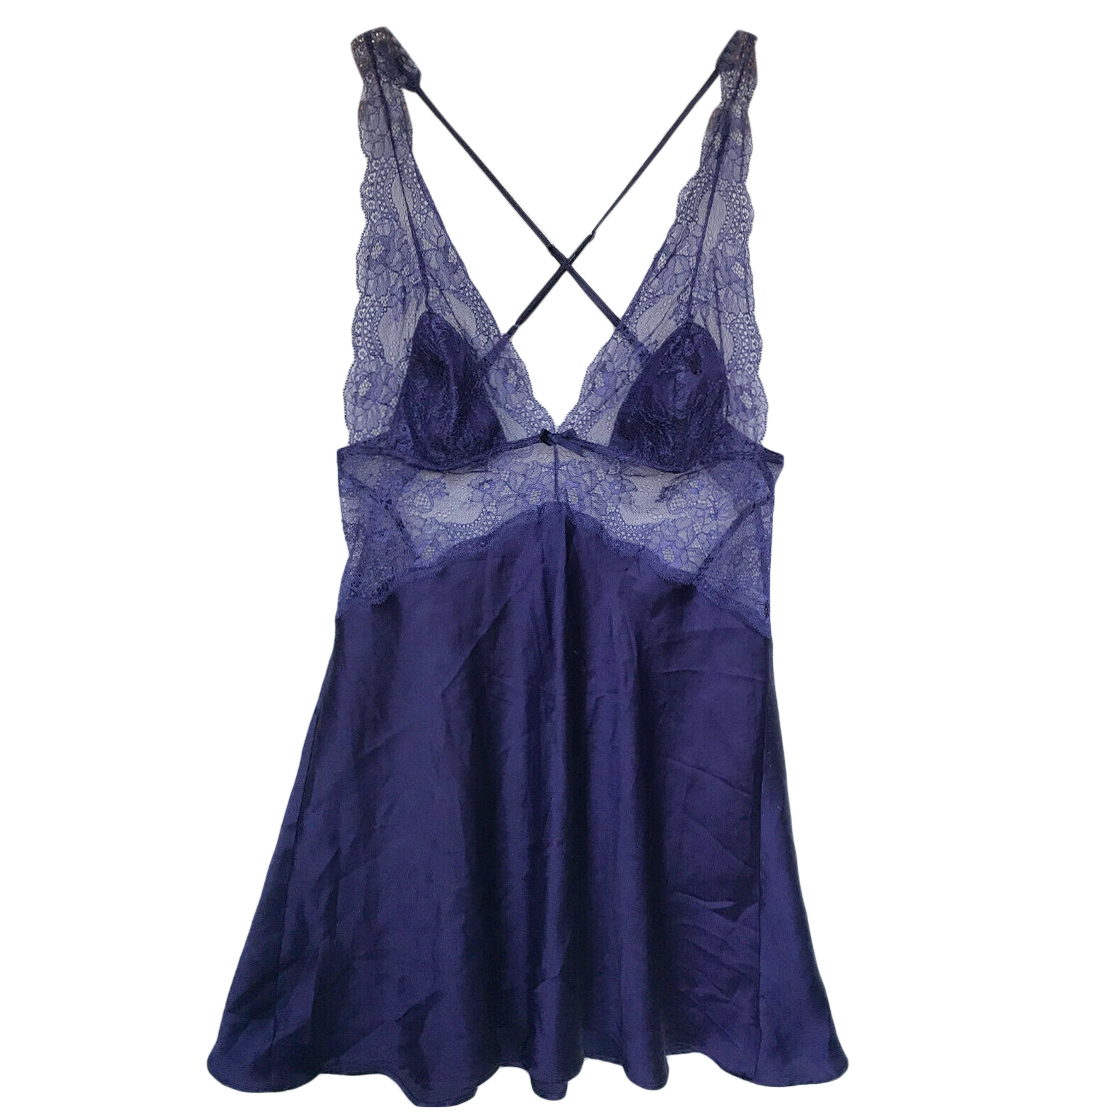 Victoria's Secret Violet Blue Satin Lace Trim Cami